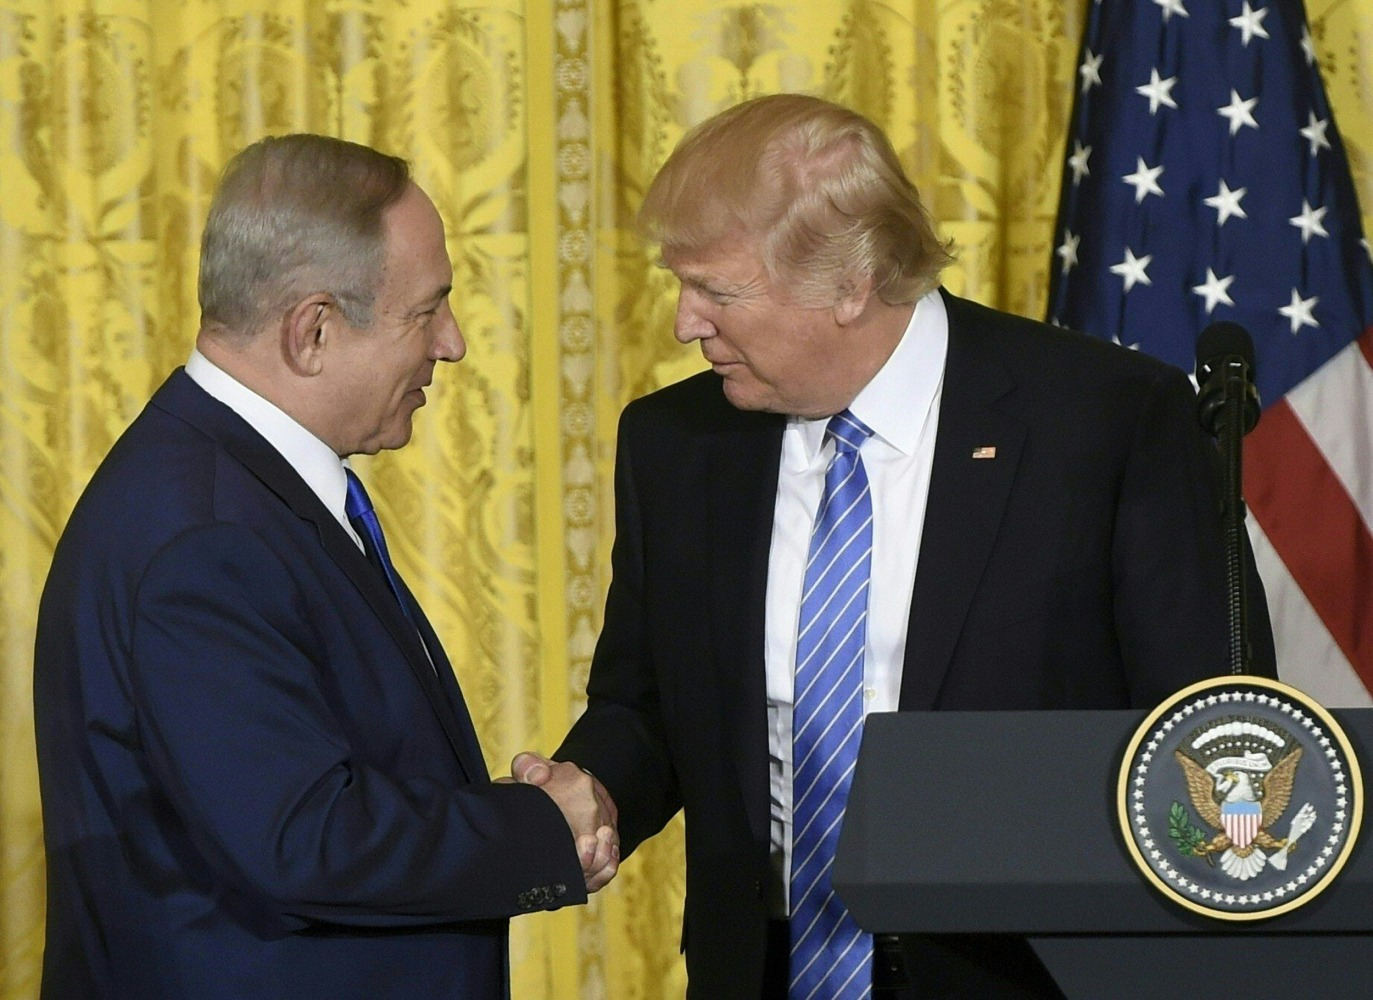 Intel spat adds to Israeli concerns about Trump visit